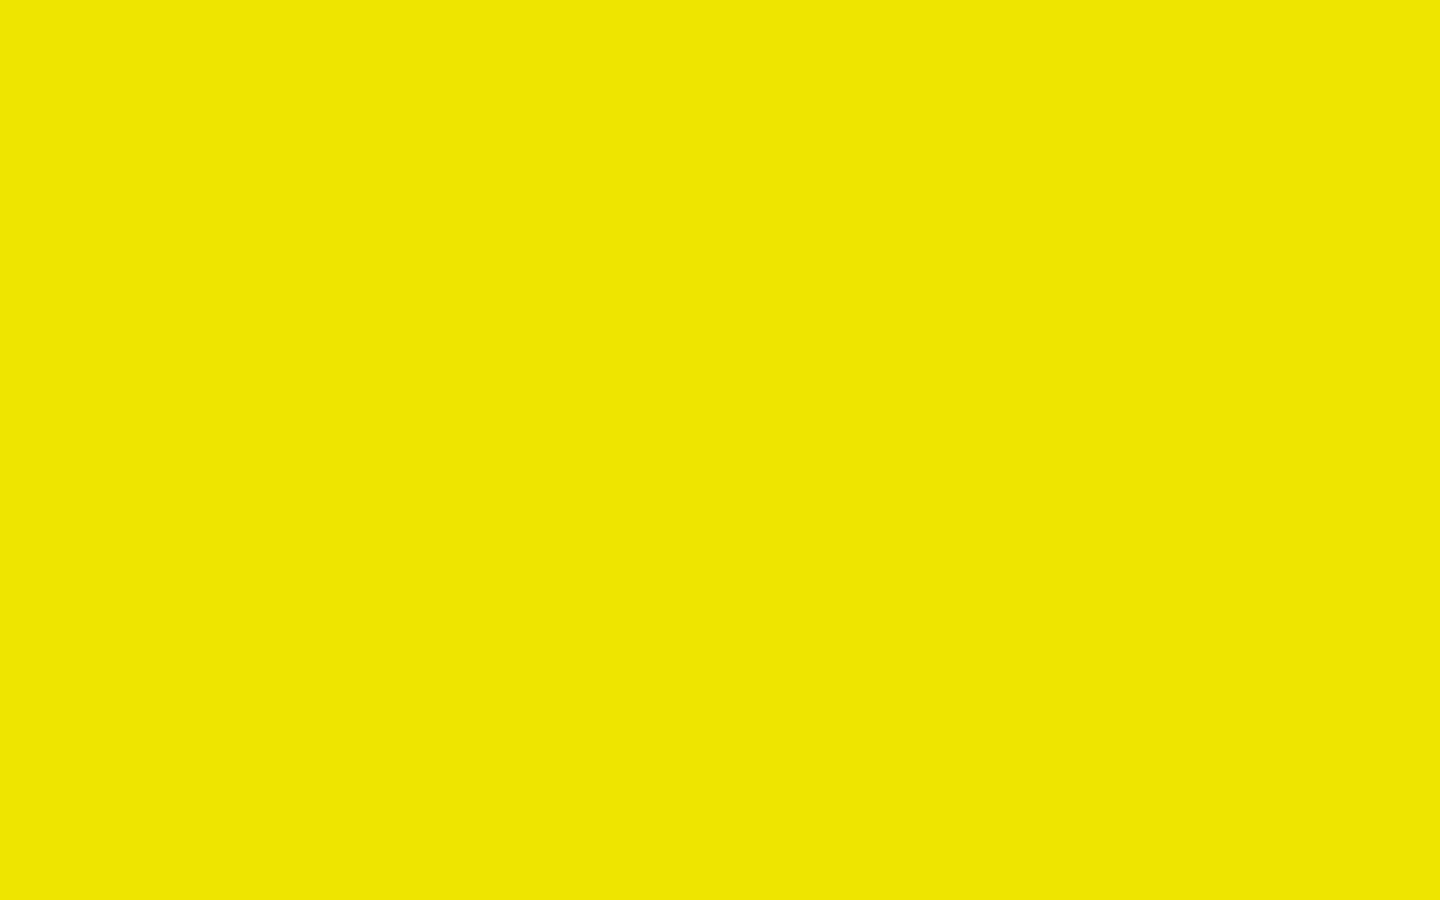 1440x900 Titanium Yellow Solid Color Background